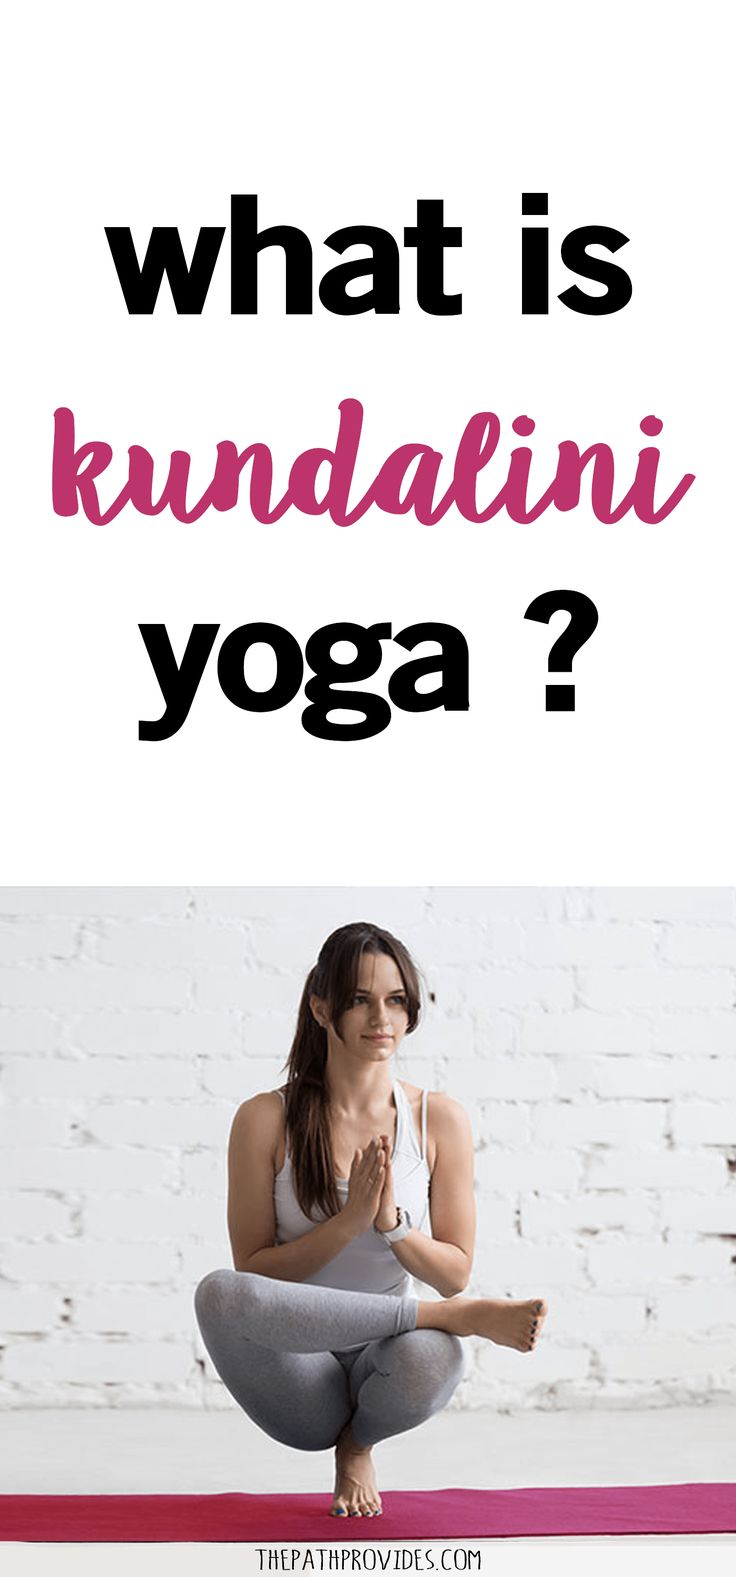 You've been thinking about starting a yoga practice but feel overwhelmed by all the different types of yoga styles out there ? Don't worry, I got your back